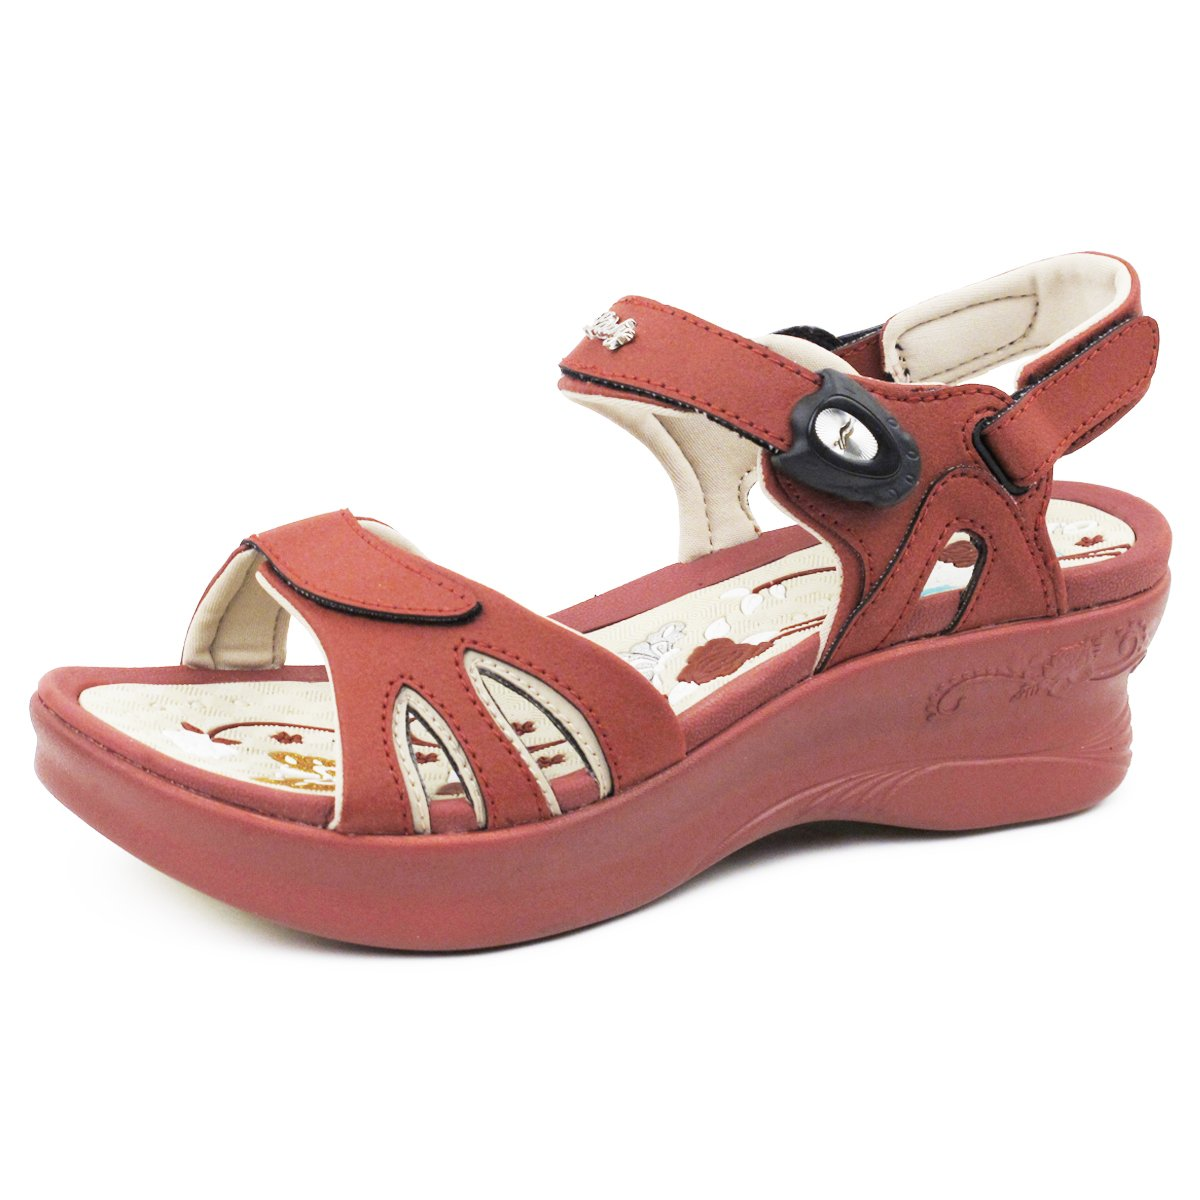 Gold Pigeon GP5974W (Size 4.5-8) Easy Magnetic Snap Lock Closure Light Weight Comfort Platform Sandals (Size 4.5-8) B01LZ8ZWIO EU36: US 5/5.5|Burgandy